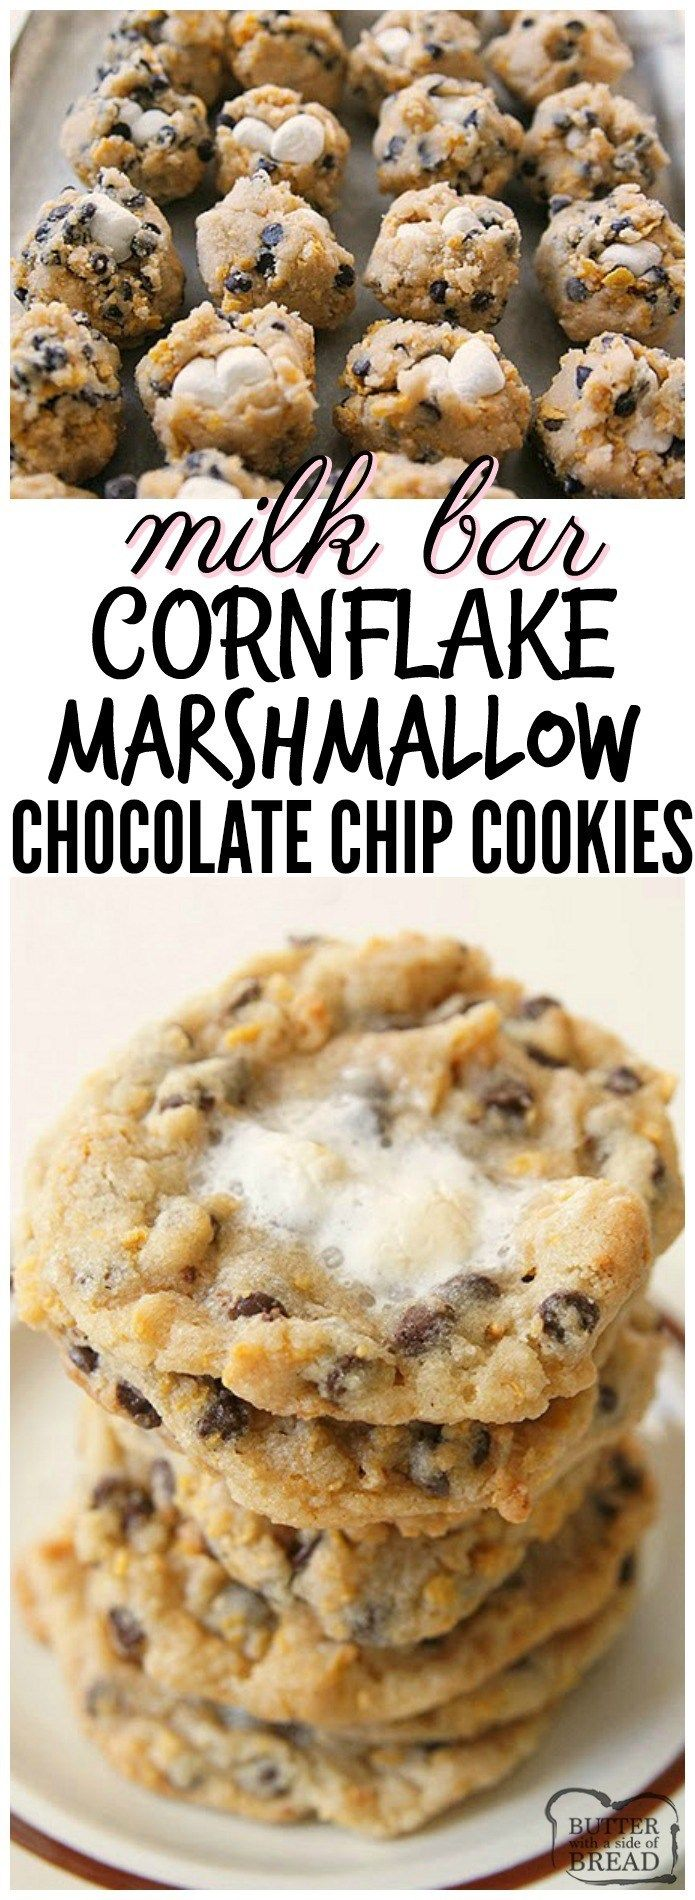 Milk Bar Cornflake Marshmallow Cookies just like the ones served in Momofuku Milk Bar in NYC! I think my version is even BETTER...and they're easier to make! See my tips and tricks on making these incredible cornflake chocolate chip cookies in your own kitchen. #milkBar #Cornflake #Marshmallow #Chocolate Chip #Cookies Copycat #recipe #dessert #food #momofuku #marshmallow